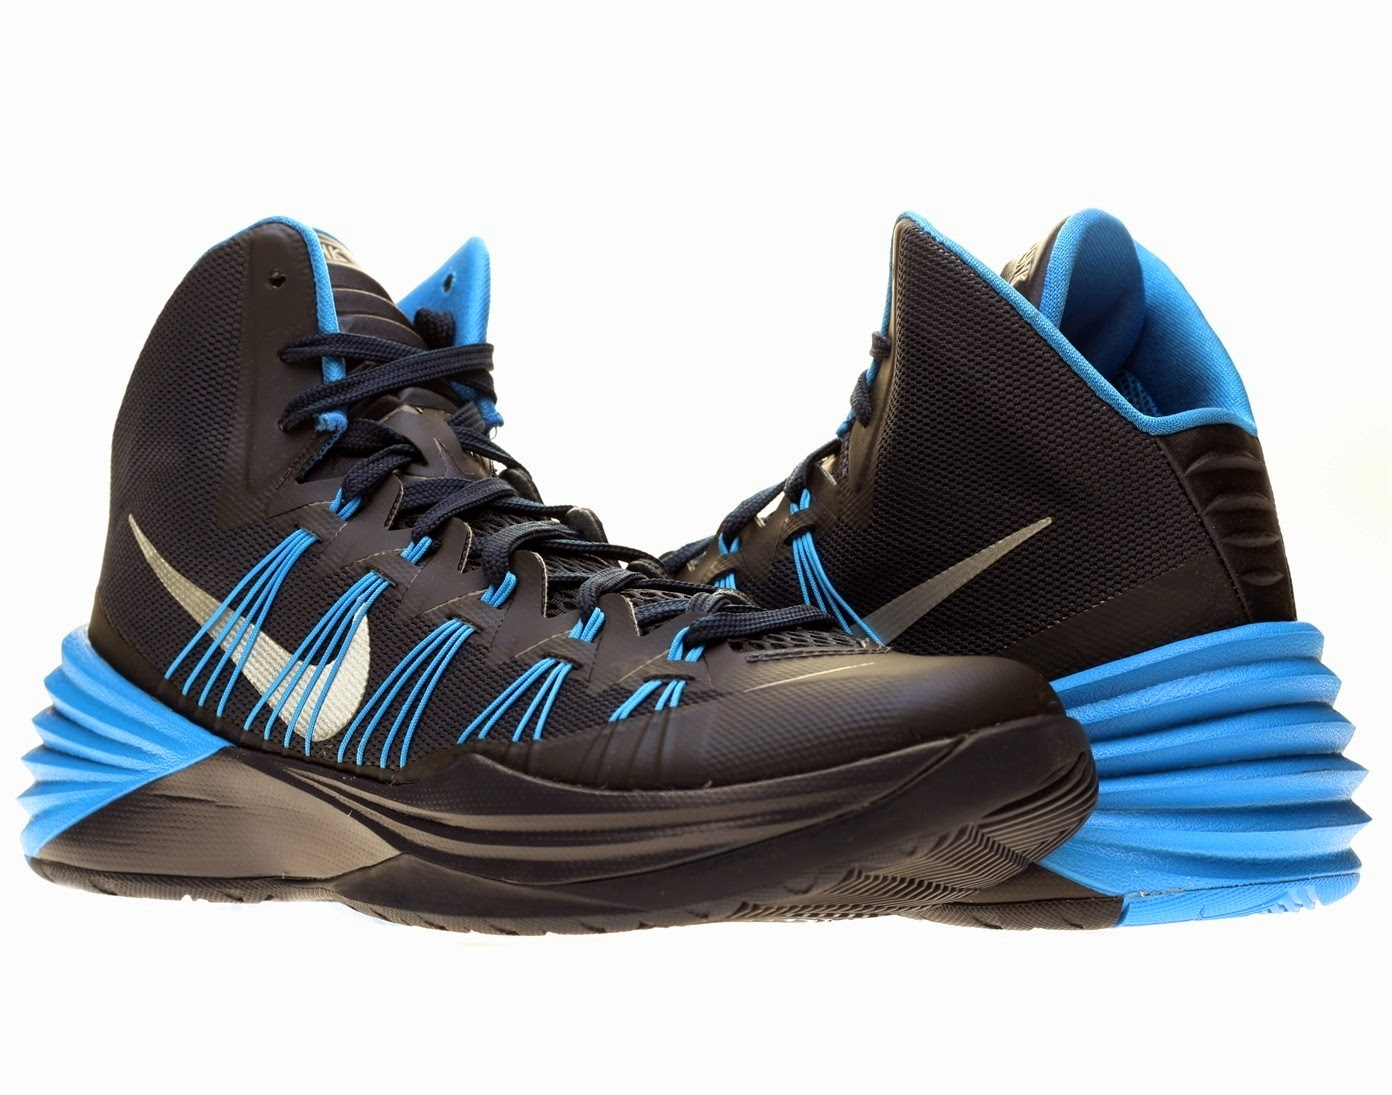 Basketball Shoes 2014 Hyperdunks Shoe Clip Art